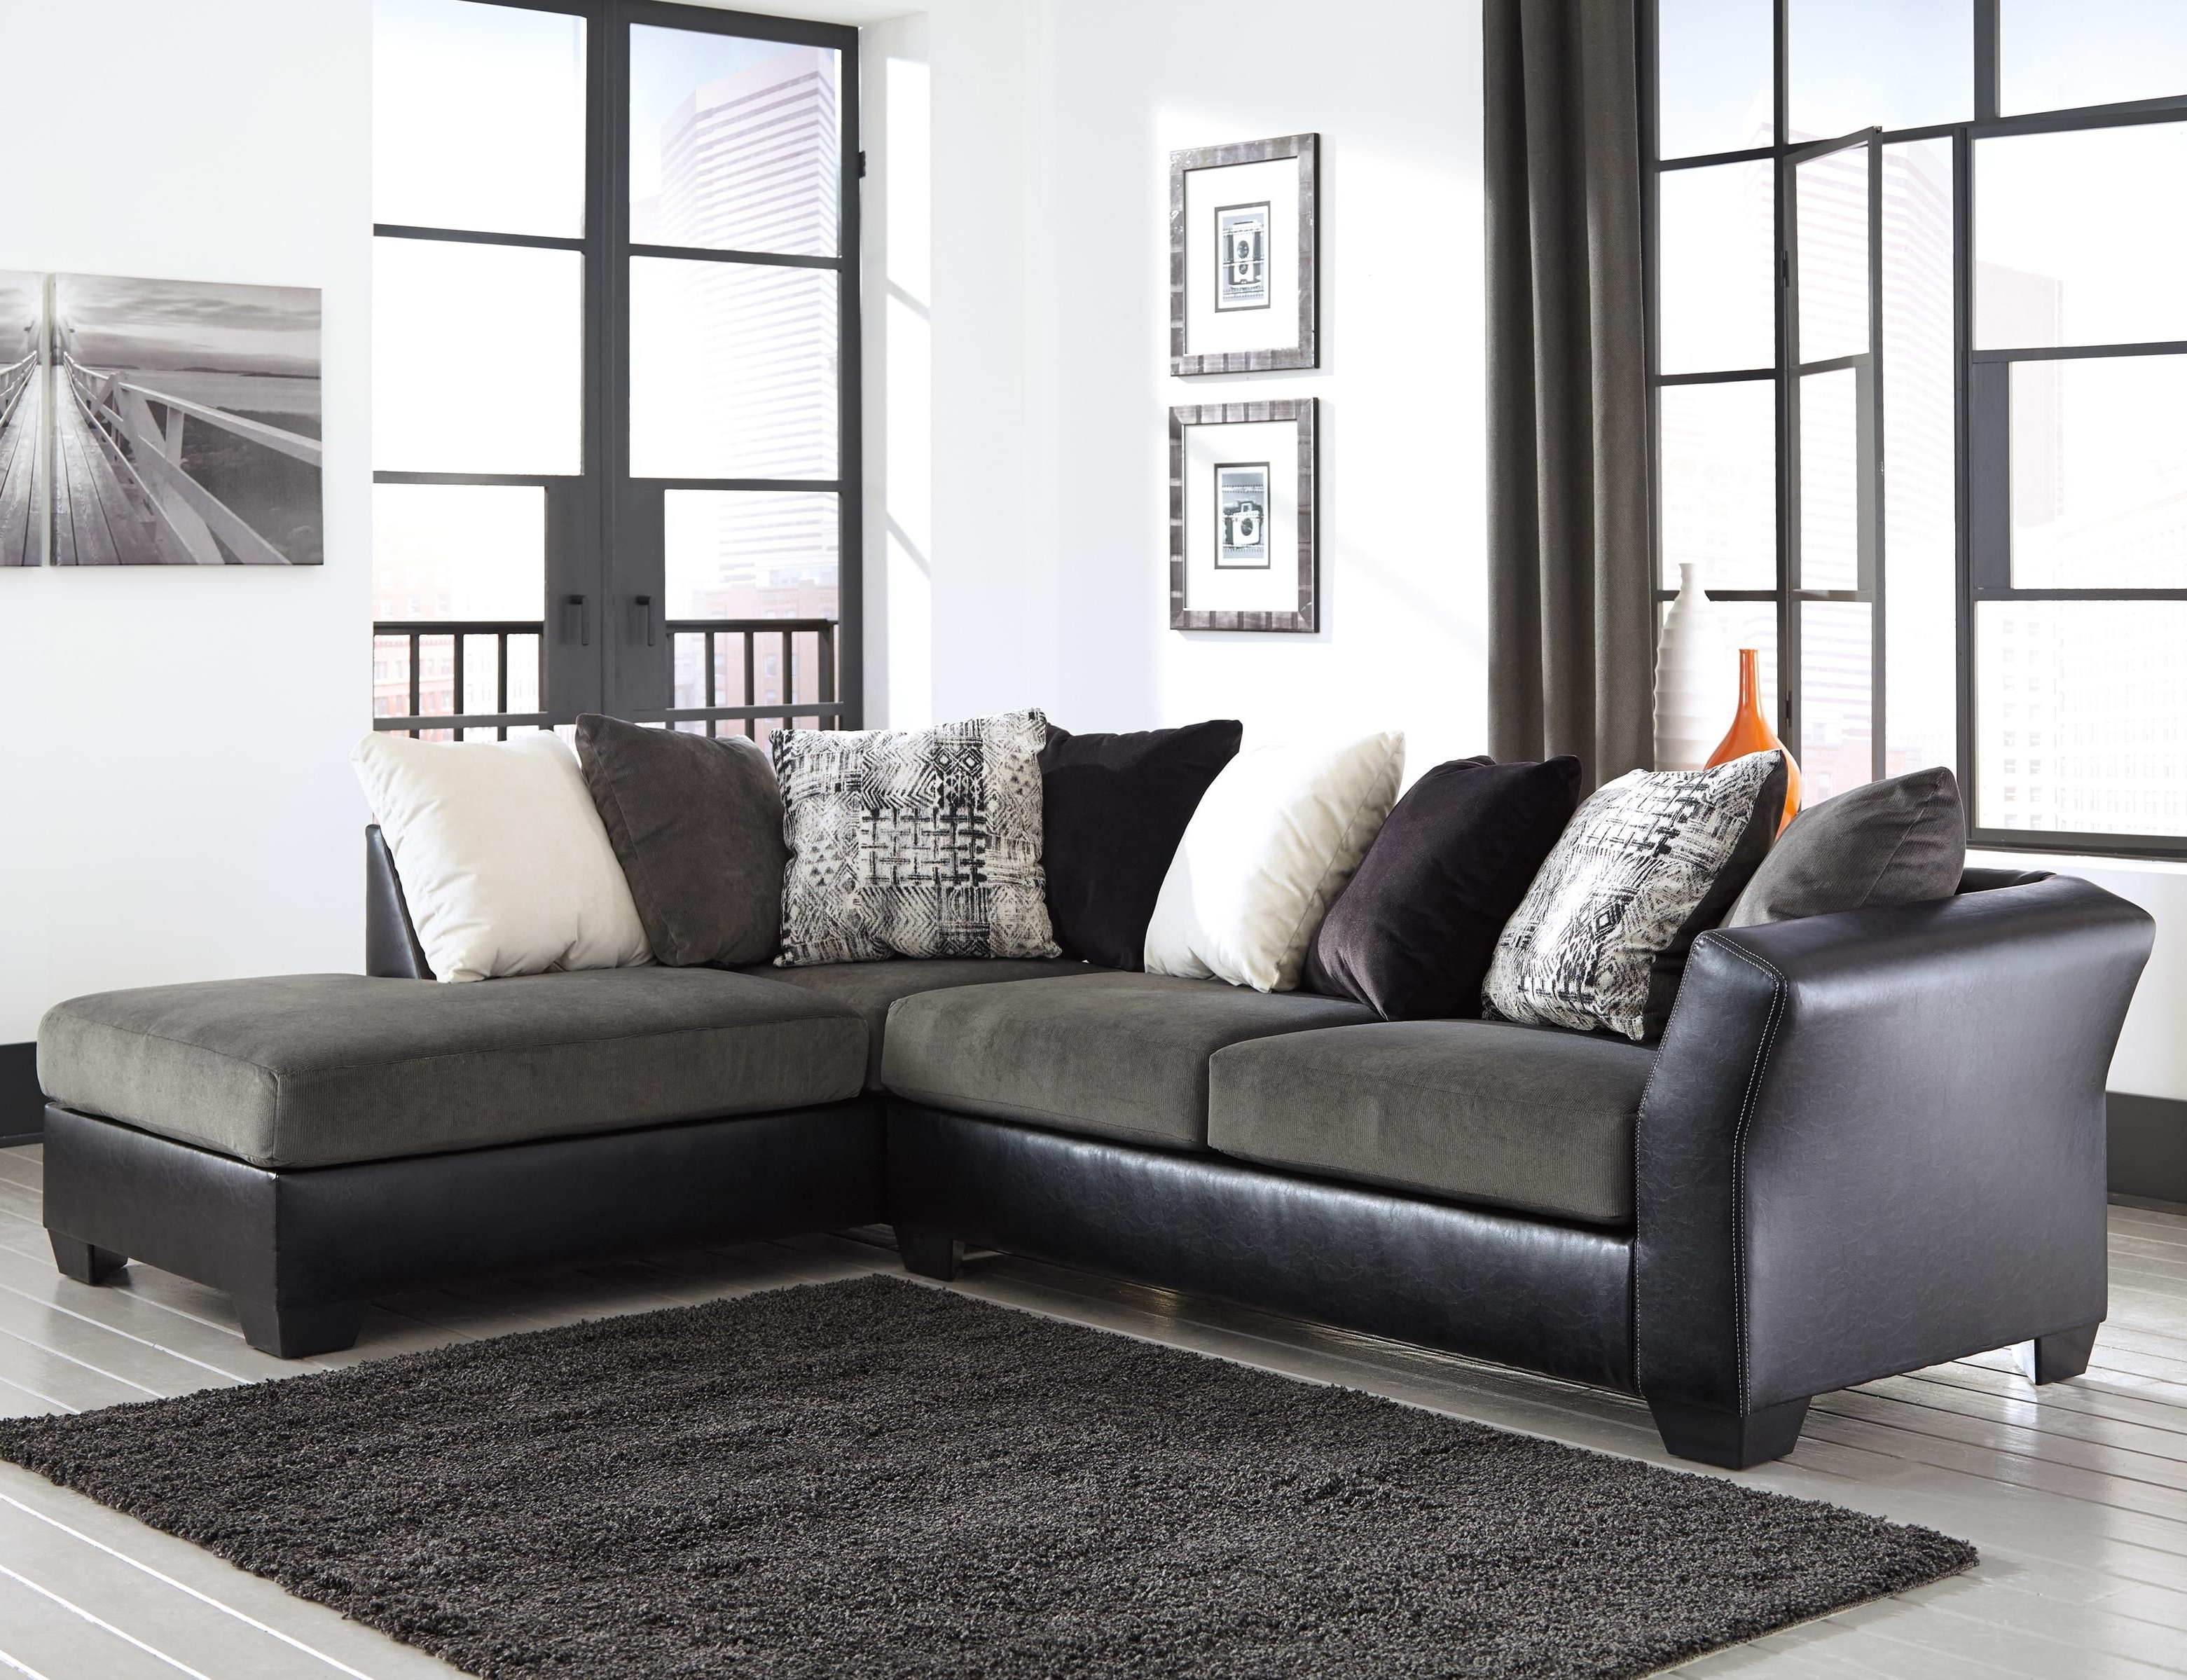 Well Known Armant 2 Piece Sectional With Right Chaisesignature Design In Eau Claire Wi Sectional Sofas (View 17 of 20)